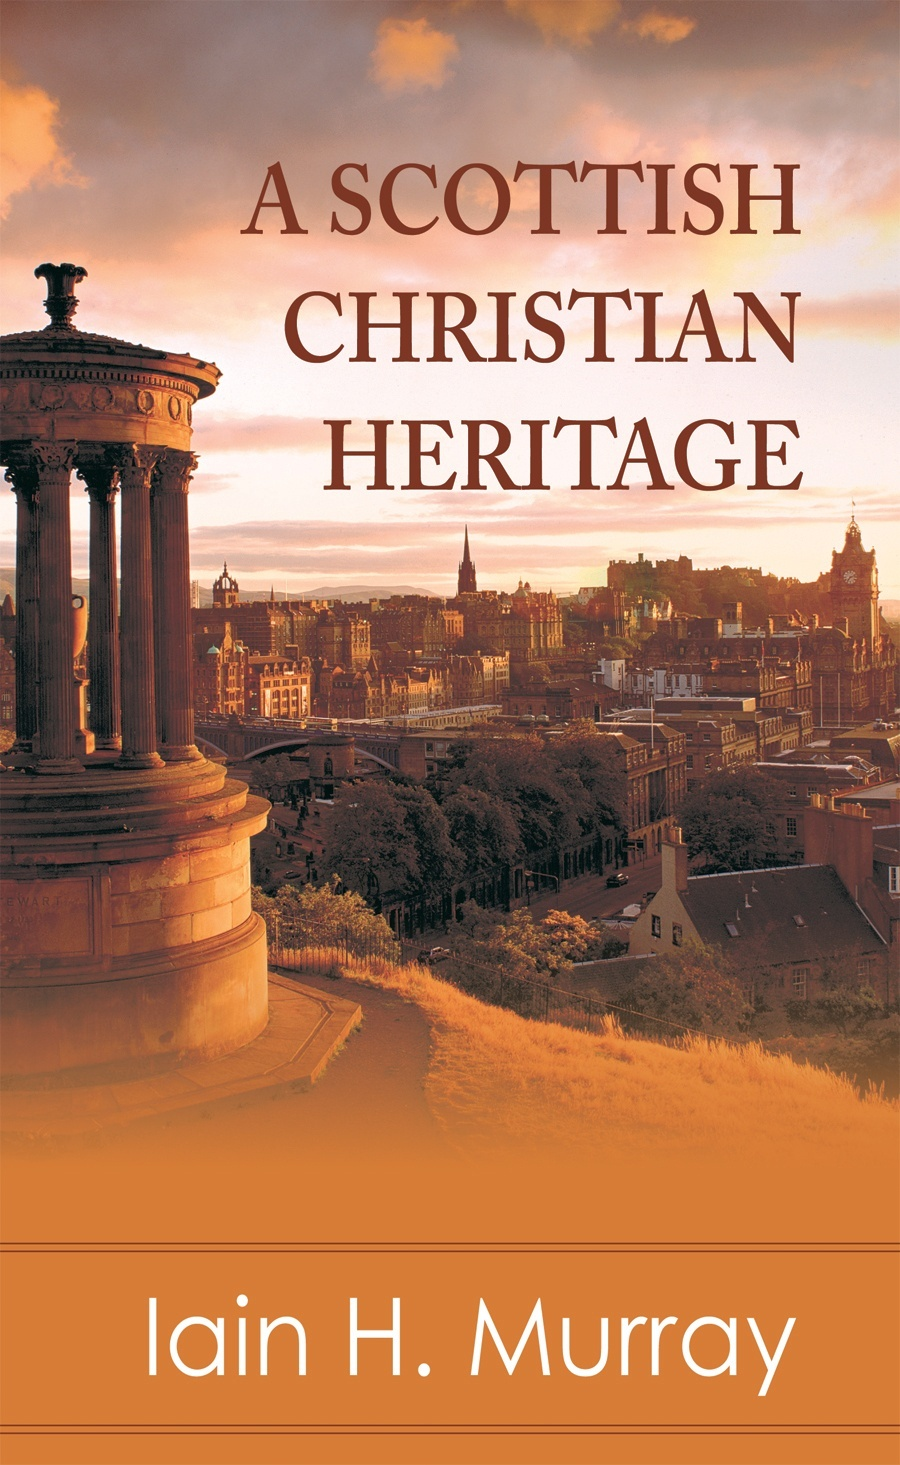 Book Cover for 'A Scottish Christian Heritage'